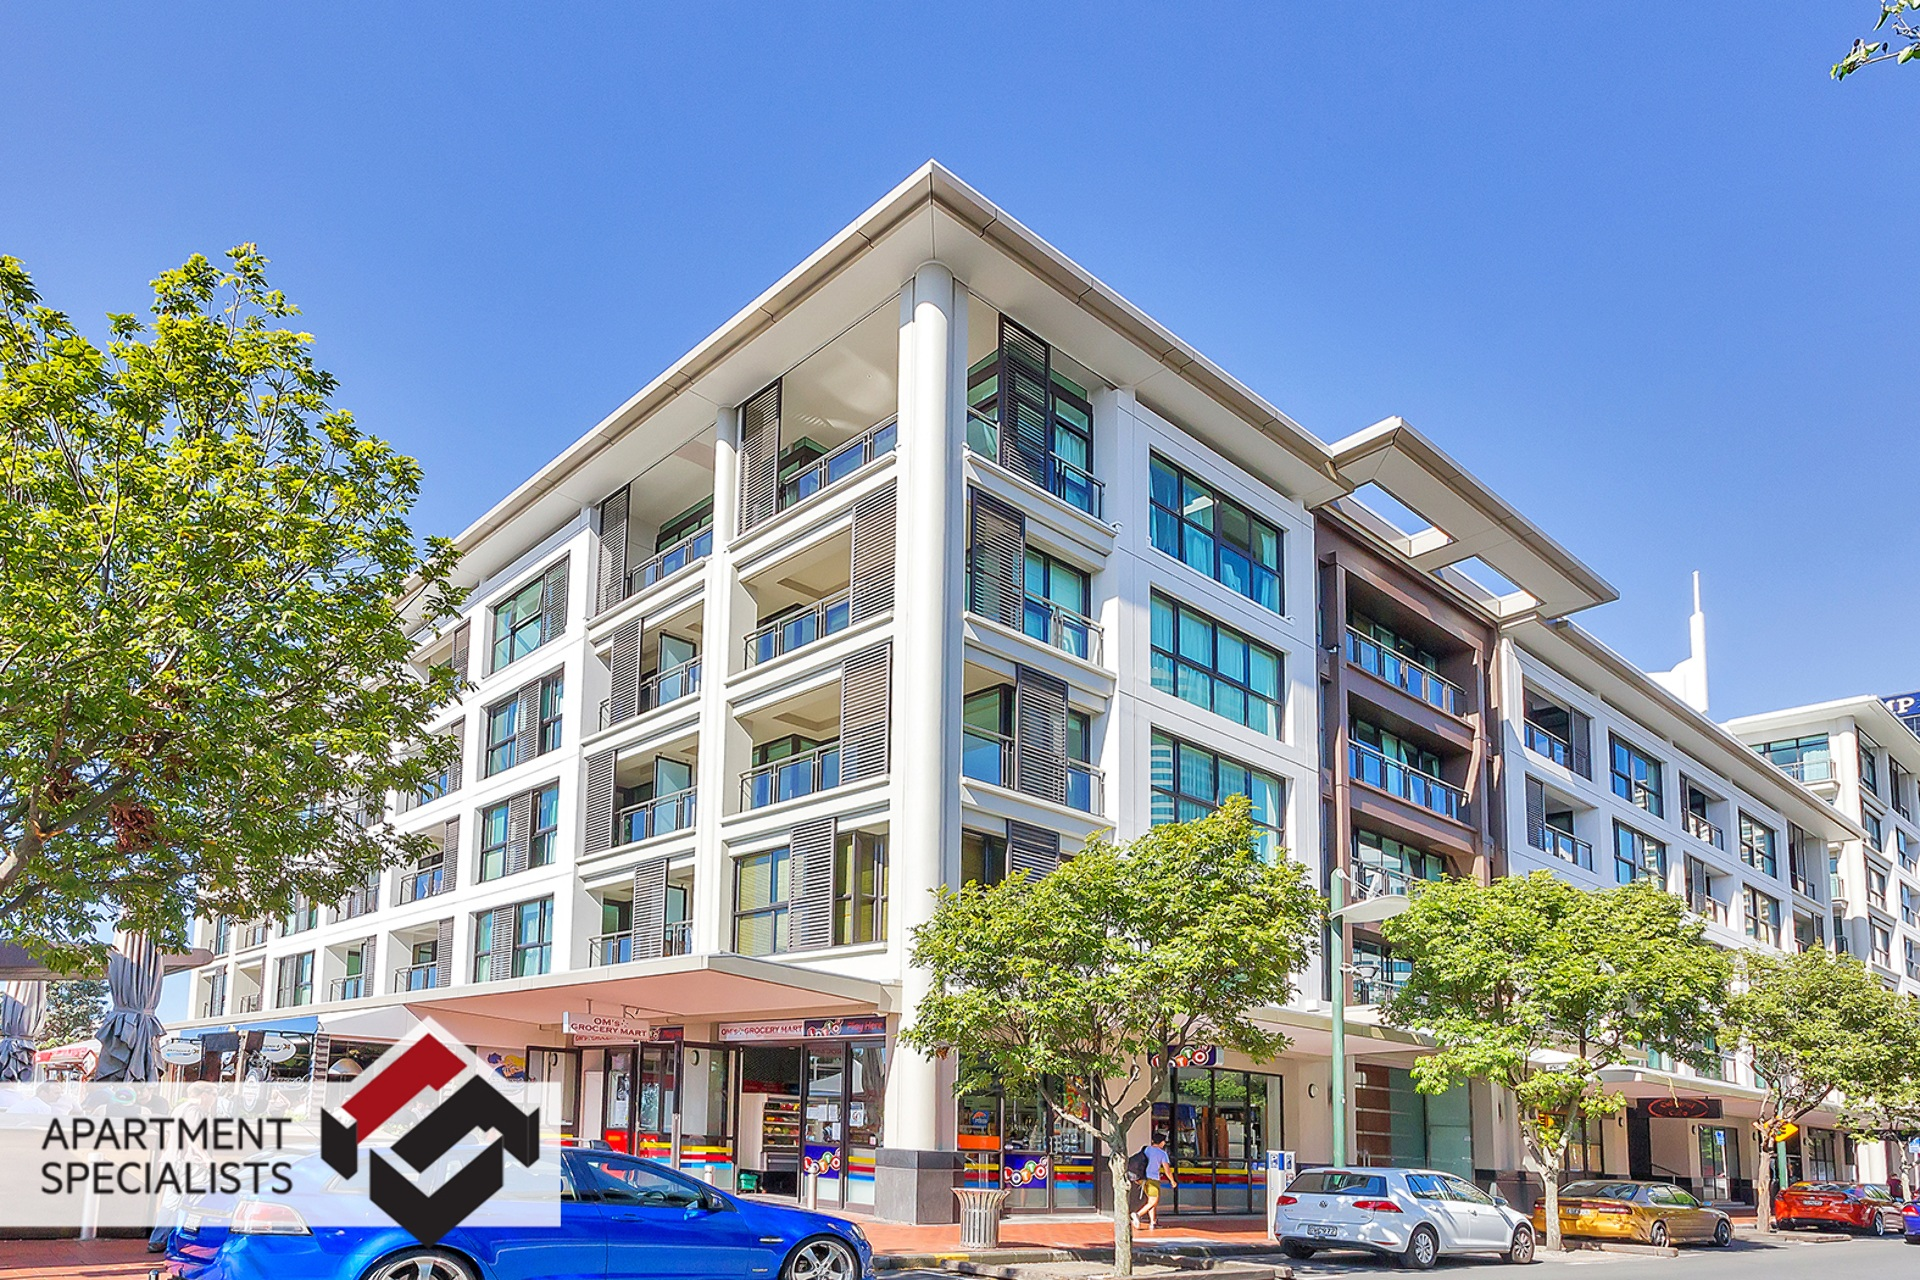 1 | 99 Customs Street West, City Centre | Apartment Specialists